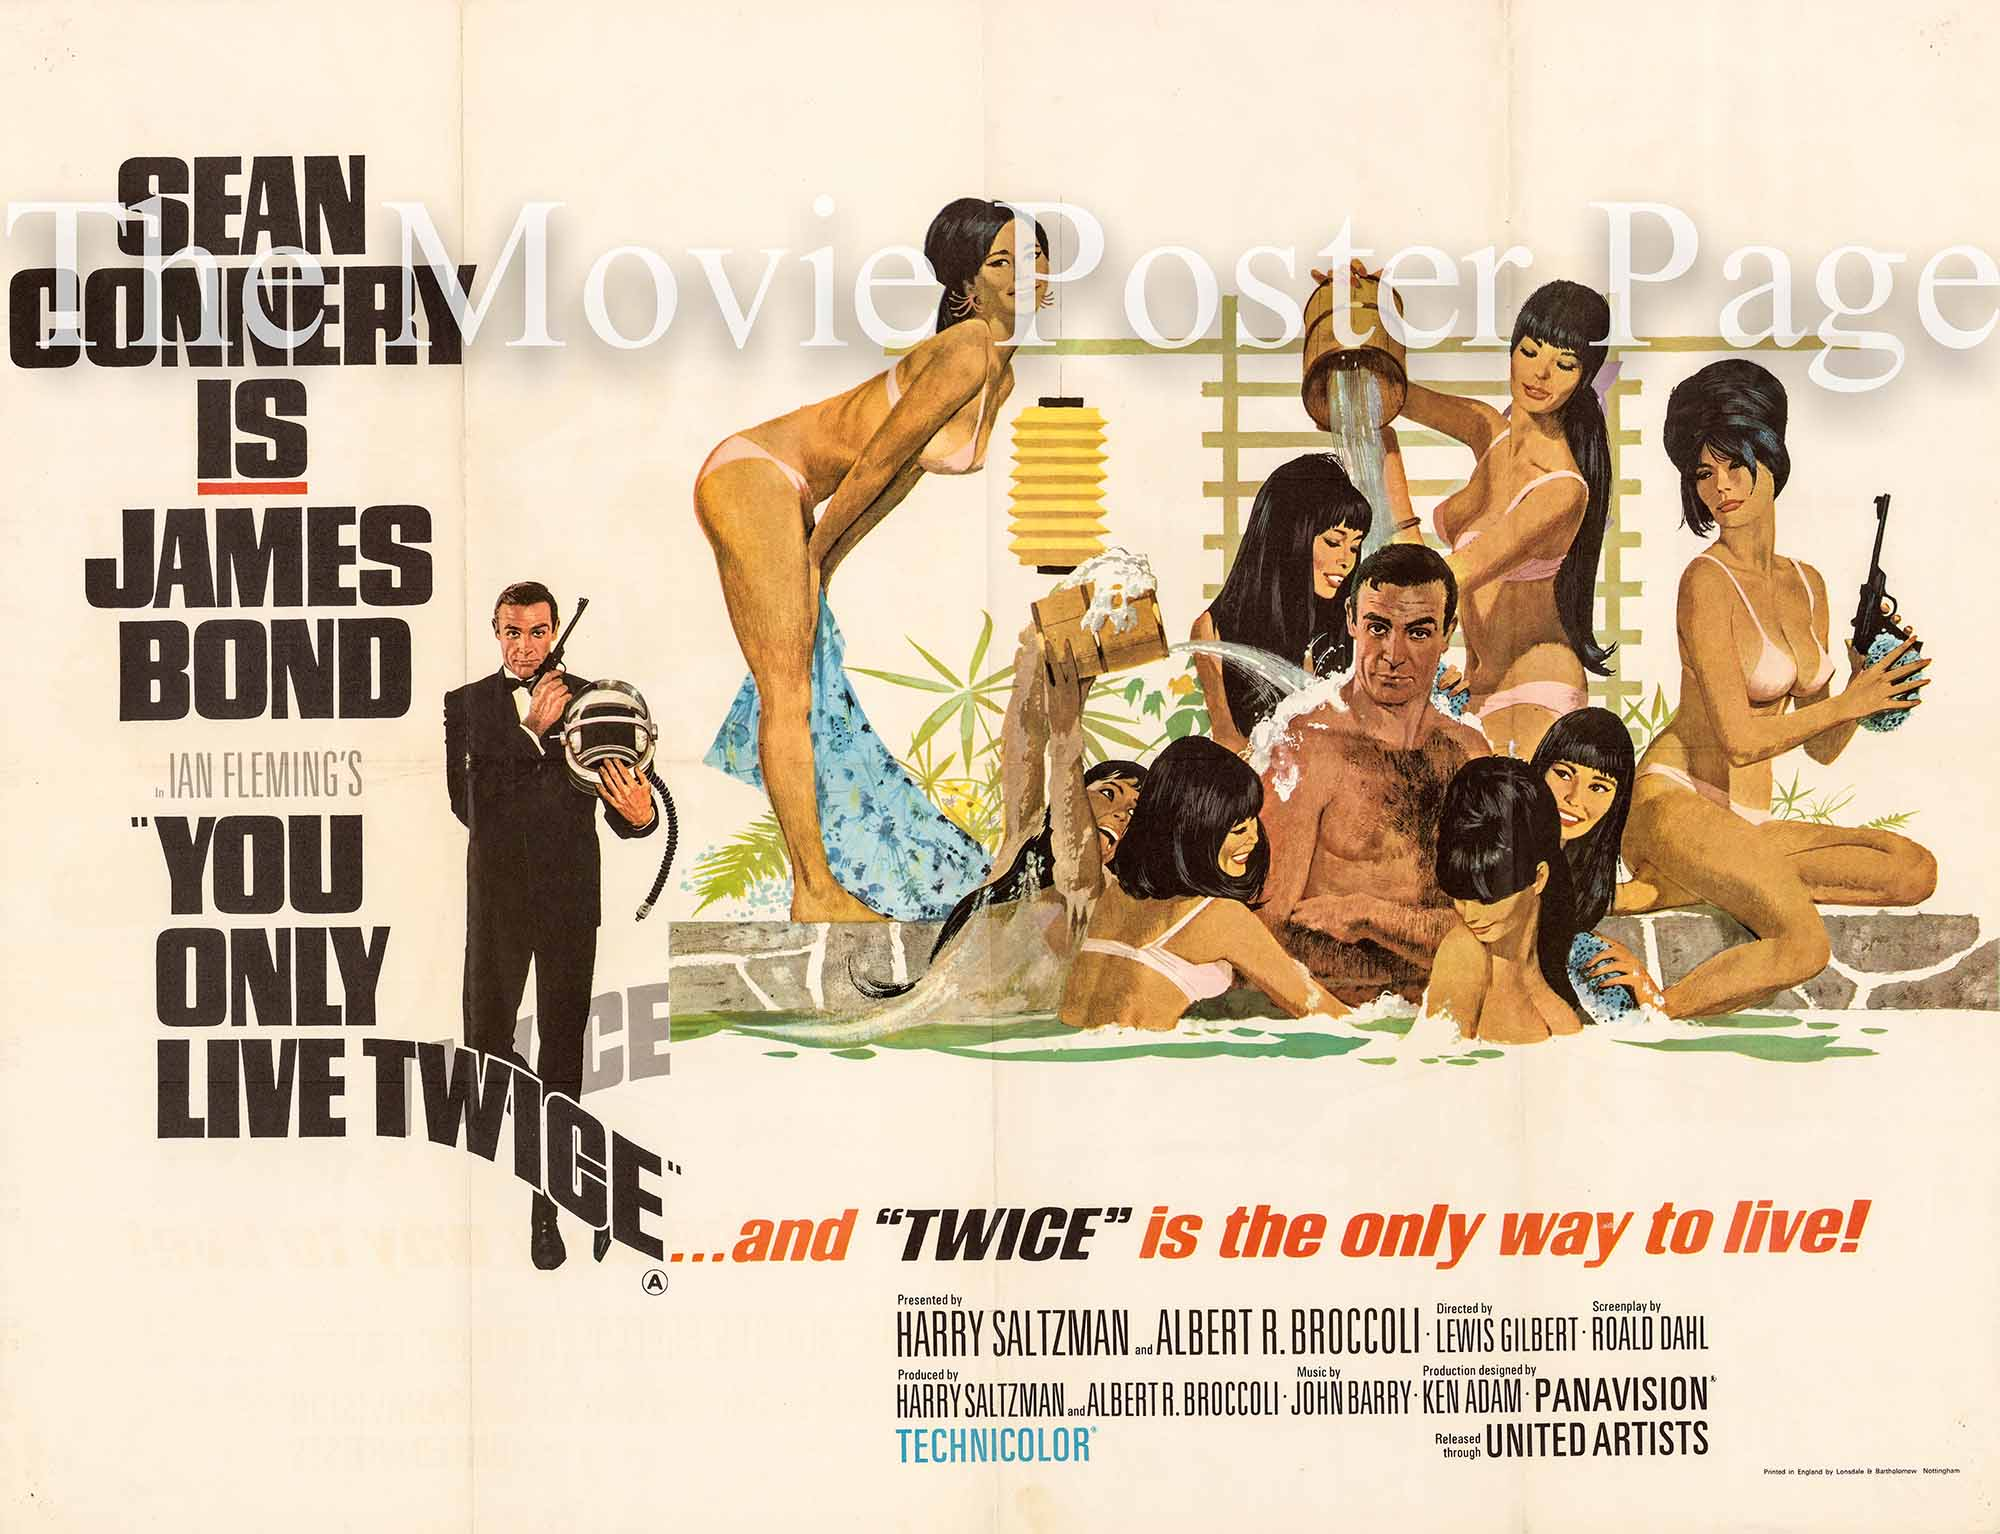 Pictured is an original UK quad poster made to promote the 1967 Lewis Gilbert film You Only Live Twice starring Sean Connery as James Bond.